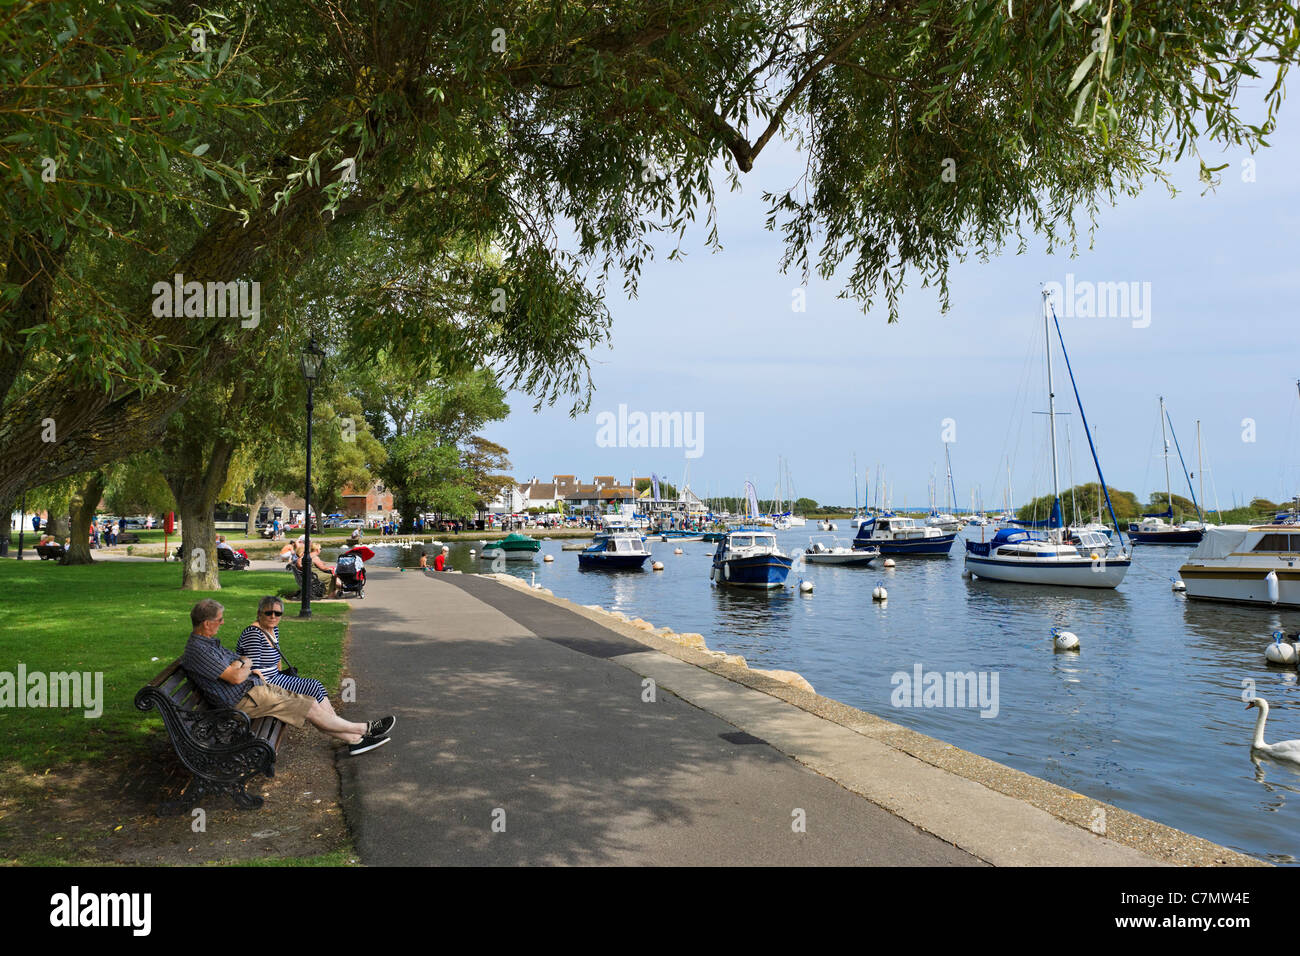 Boats on the River Stour at Town Quay, Christchurch, Dorset, England, UK - Stock Image